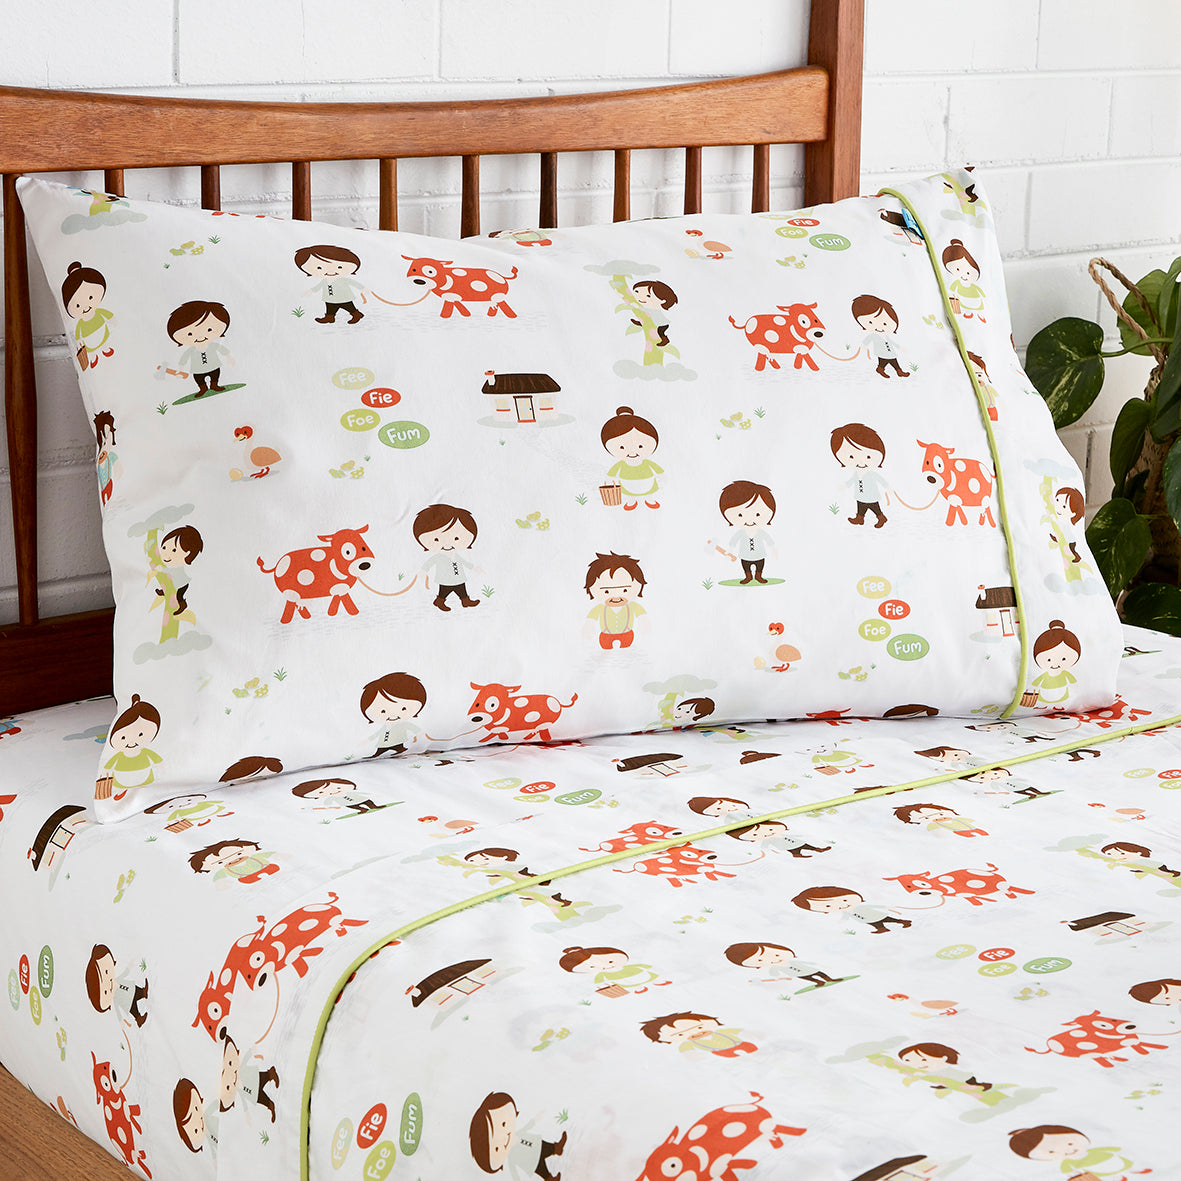 Jack & the Beanstalk Pillowcase